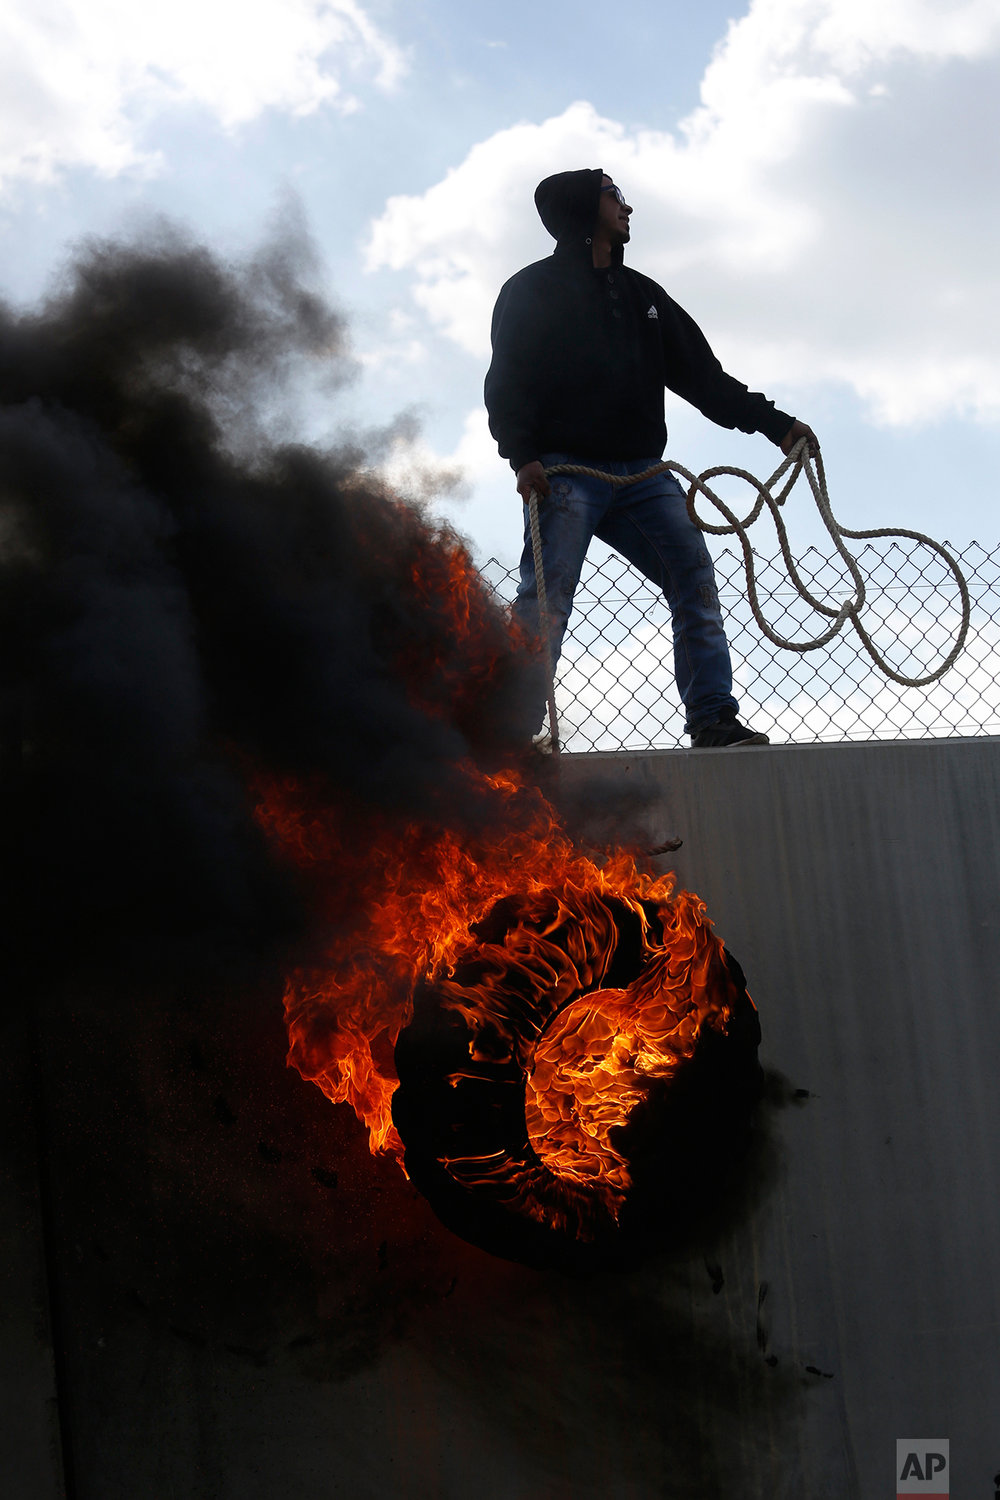 Palestinian protesters climb over the separation barrier with Israel during a demonstration marking the 12th anniversary of their campaign against Israel's separation barrier in the West Bank village of Bilin near Ramallah, Friday, Feb. 17, 2017. (AP Photo/Majdi Mohammed)